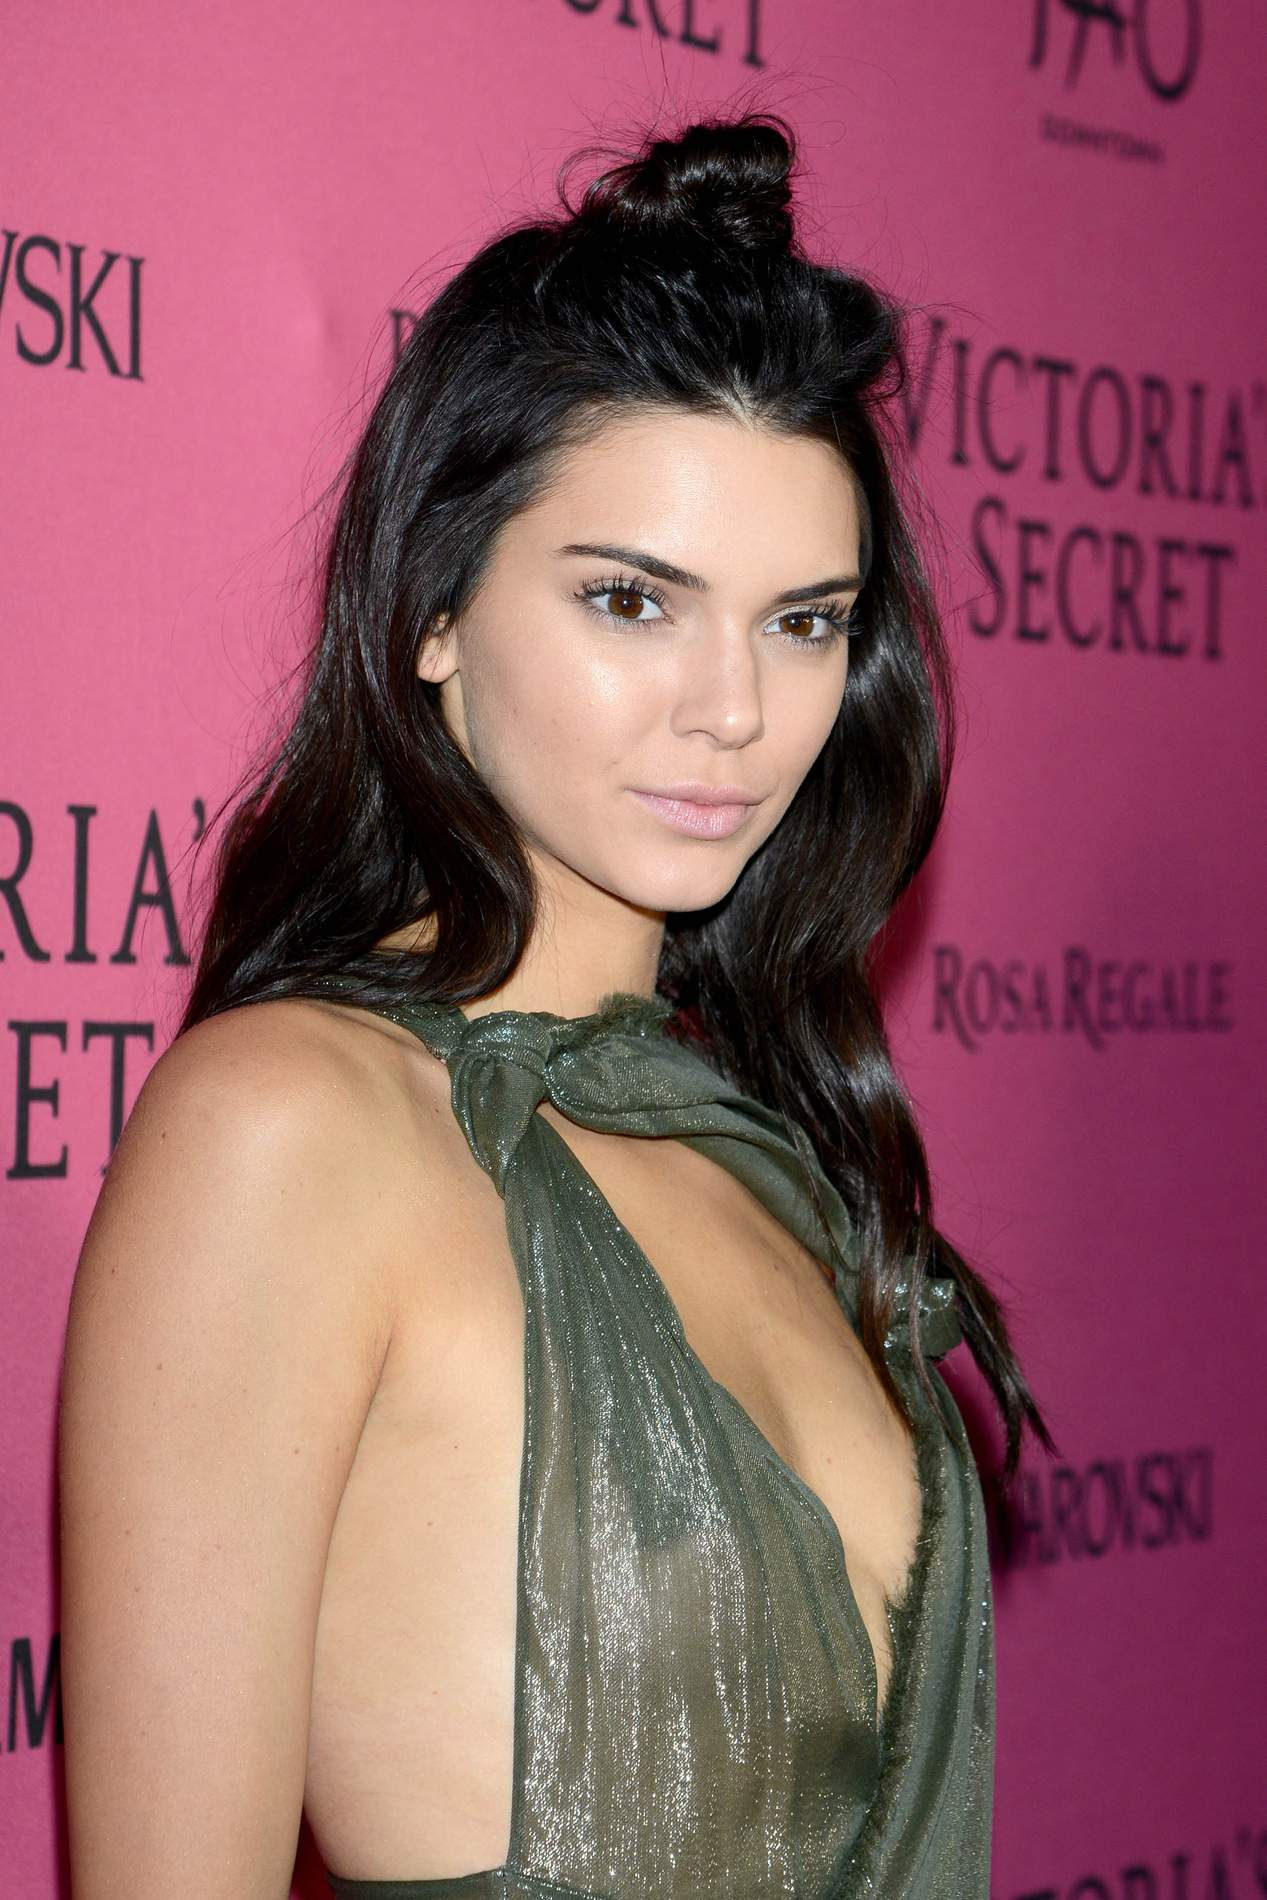 Kendall Jenner arrives at Victorias Secret Fashion Show After Party-1